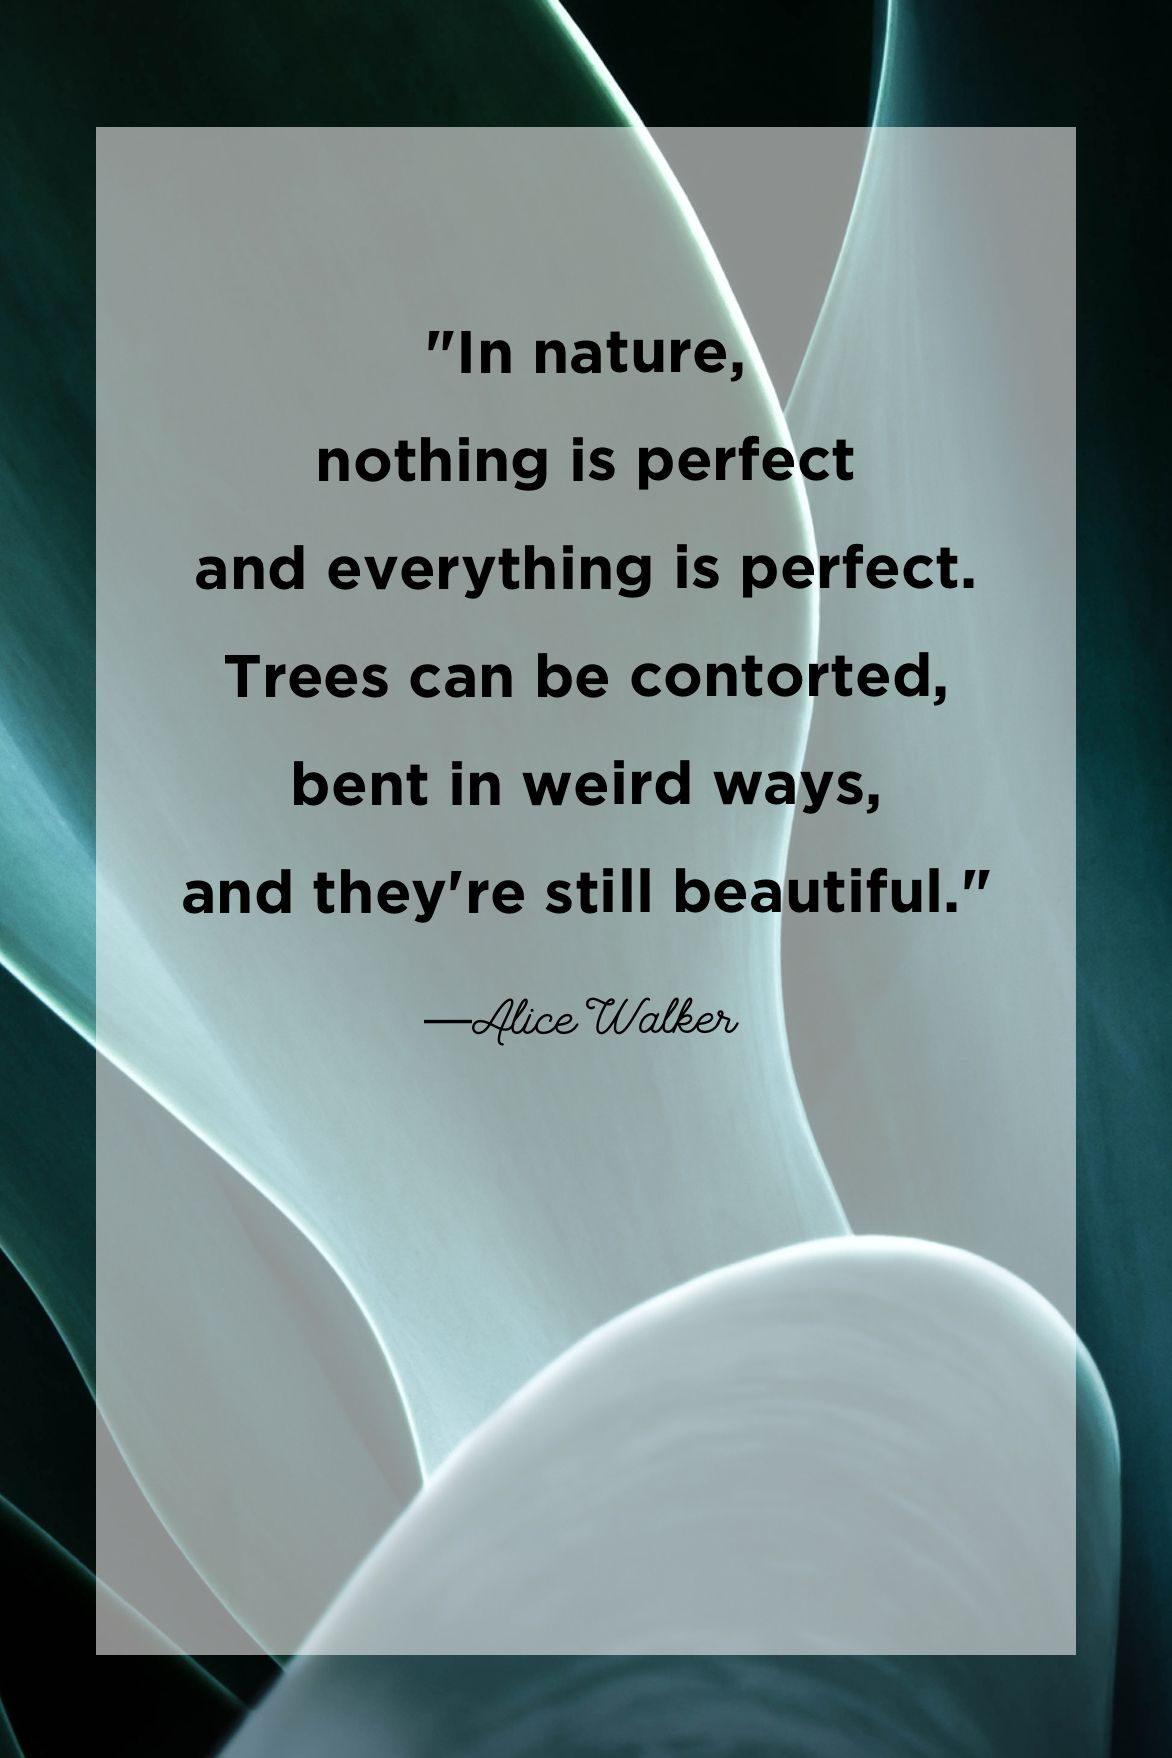 35 Best Nature Quotes - Inspirational Sayings About Nature